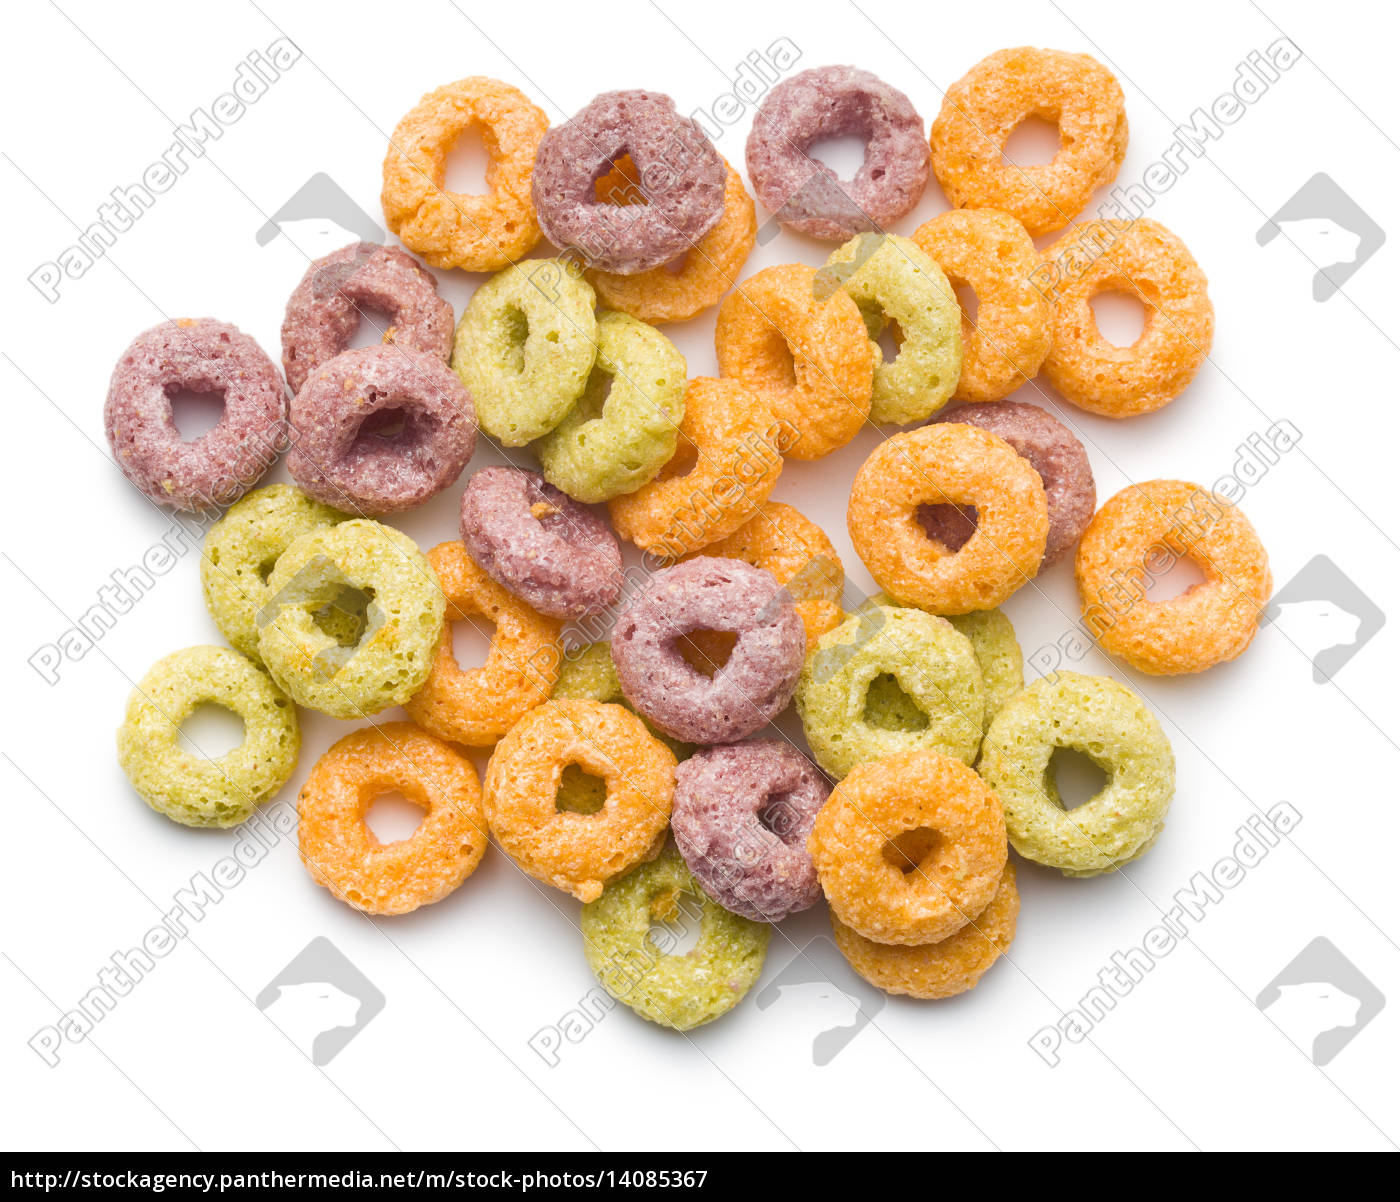 colorful, cereal, rings - 14085367